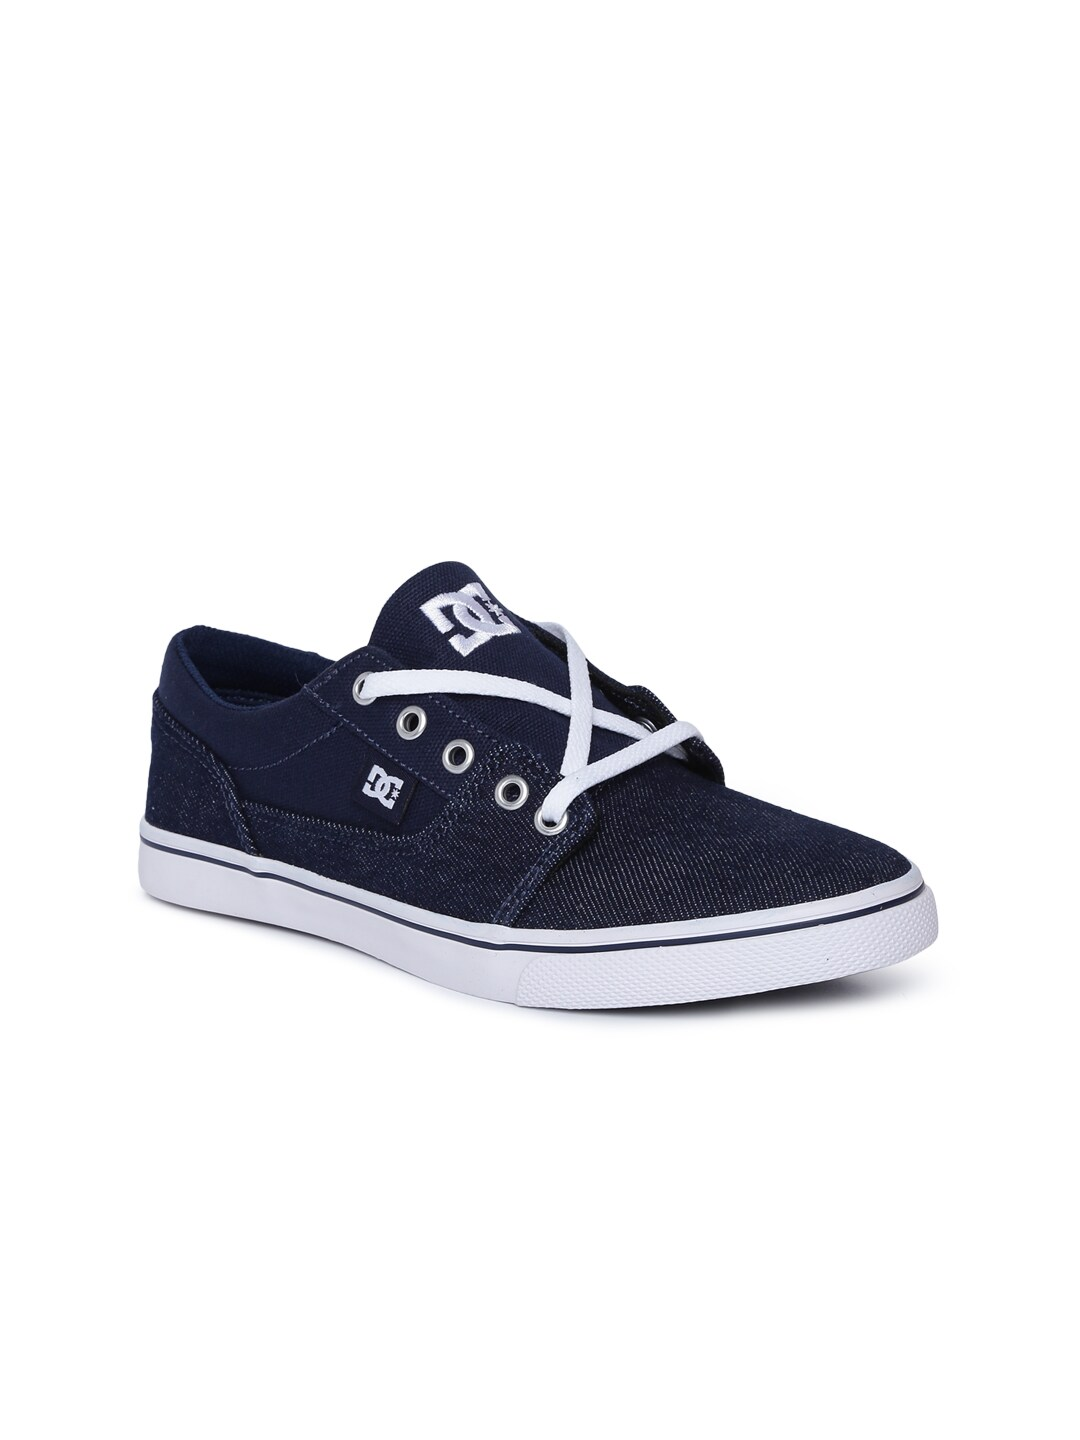 59396c18bf5 DC Shoes - Buy DC Shoes for Men   Women Online in India